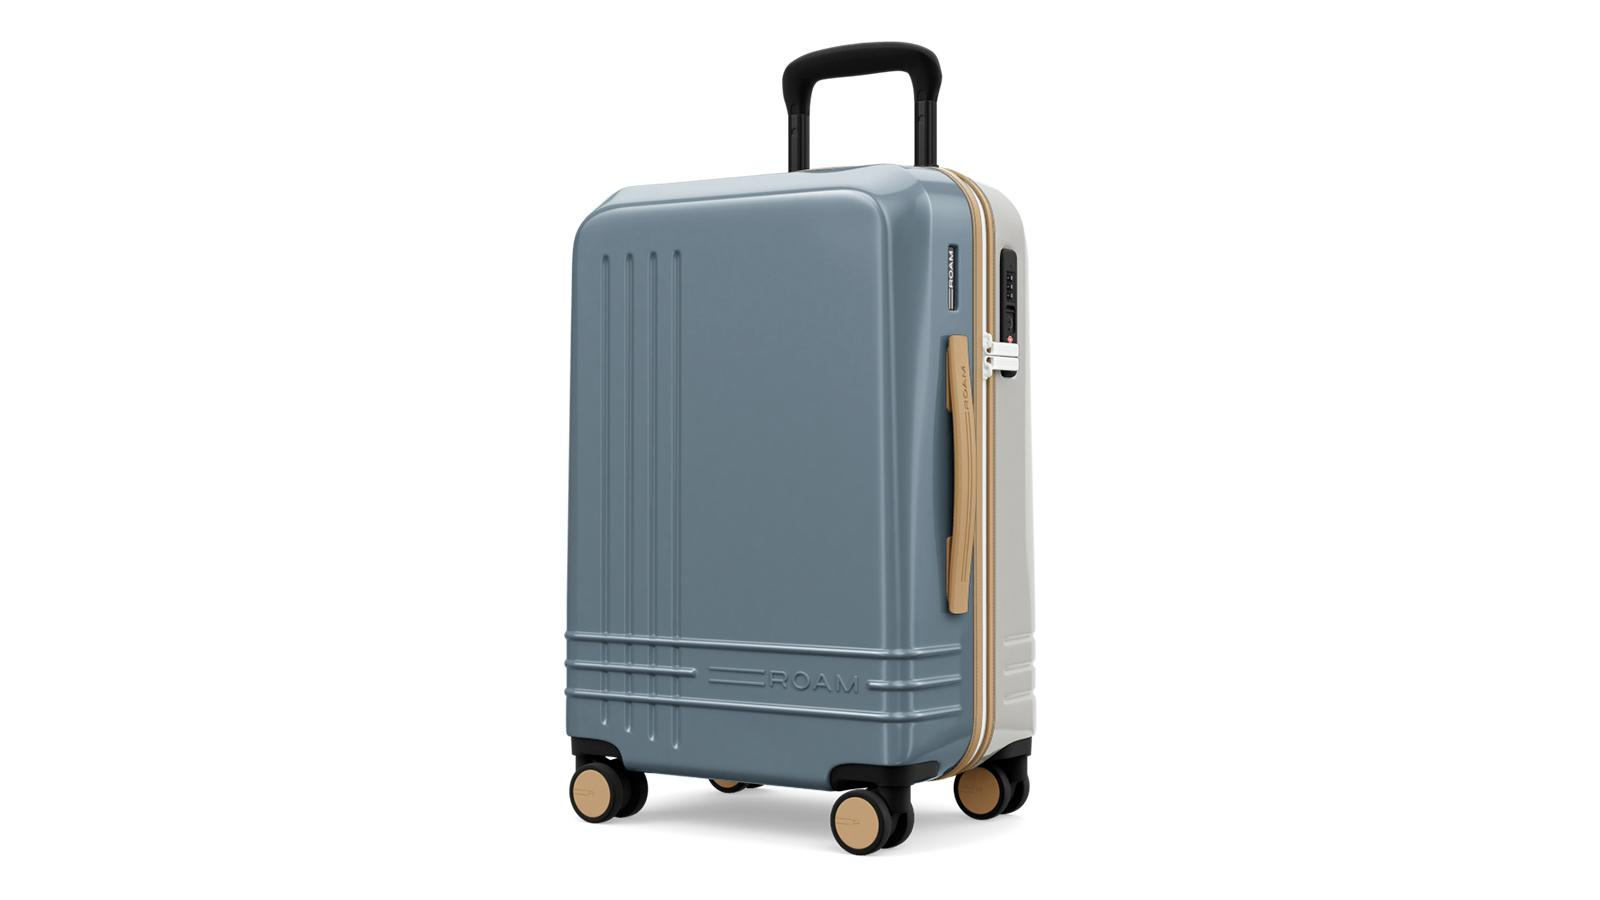 Roam Jaunt Carry-On Luggage